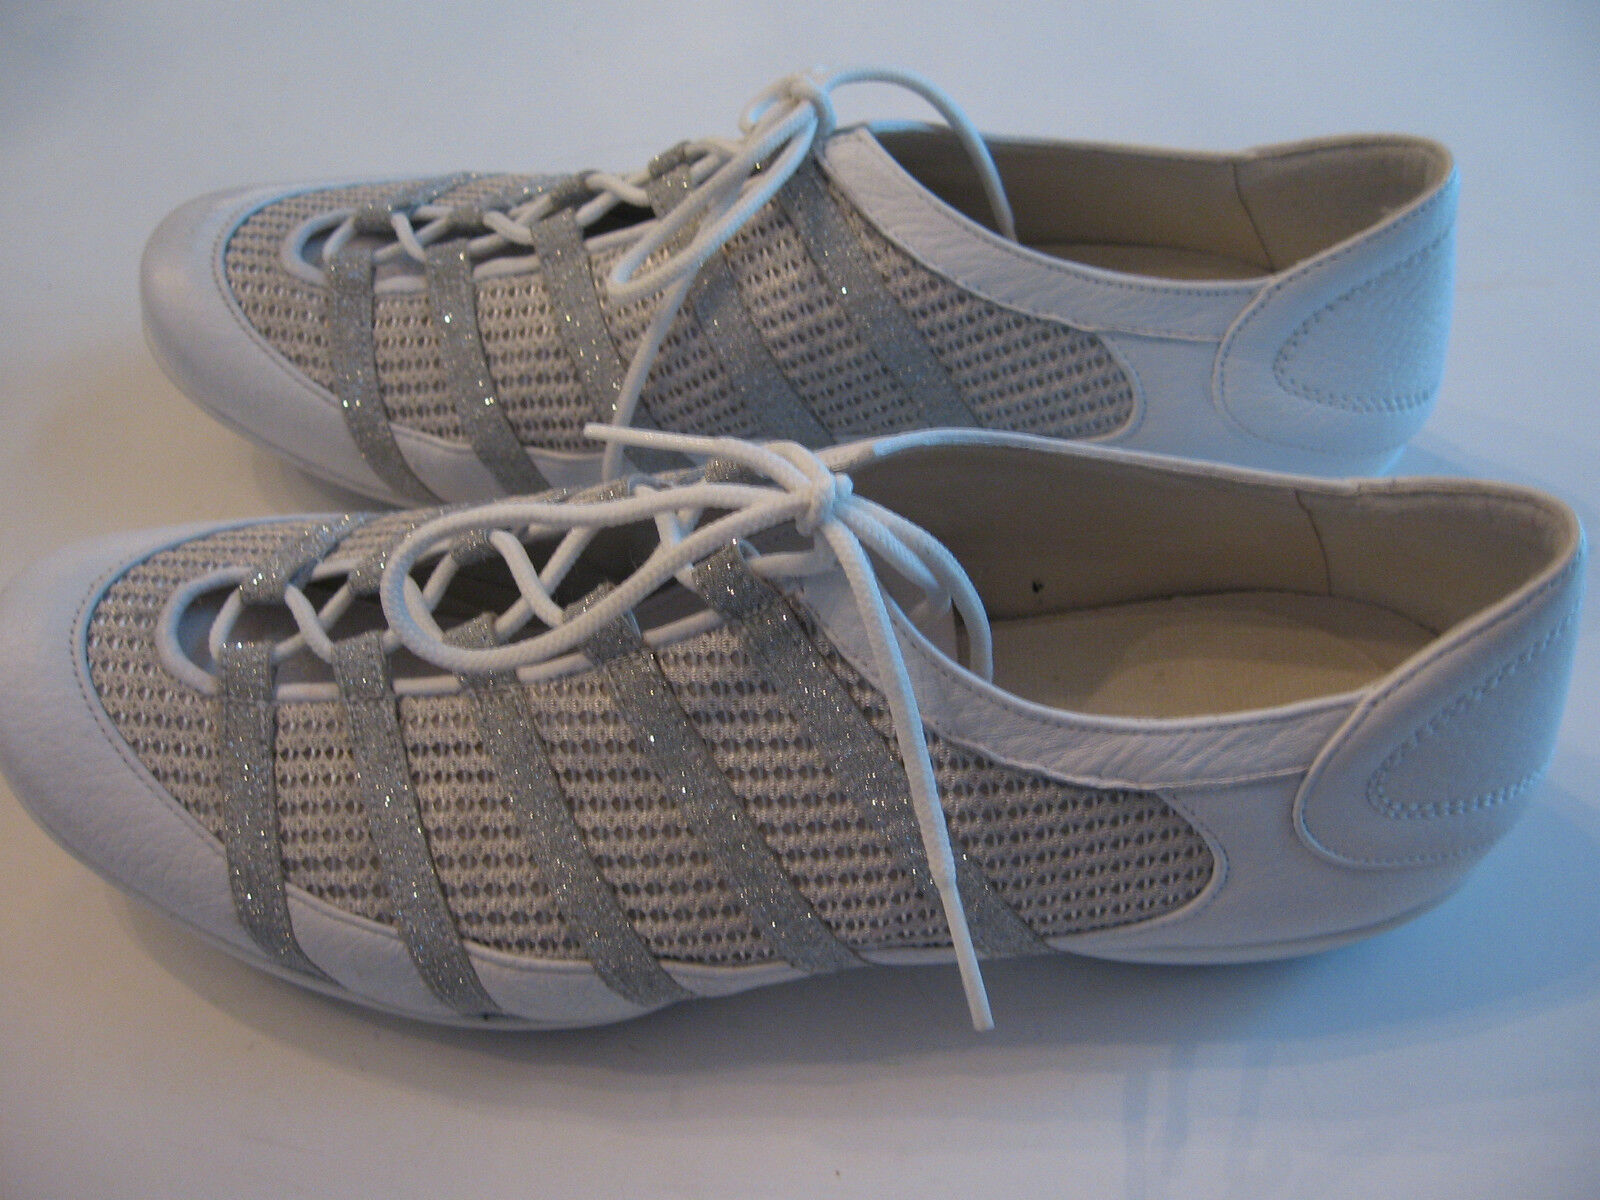 STUART WEITZMAN LEATHER SNEAKERS WITH SPARKLES - SIZE 7 1 2